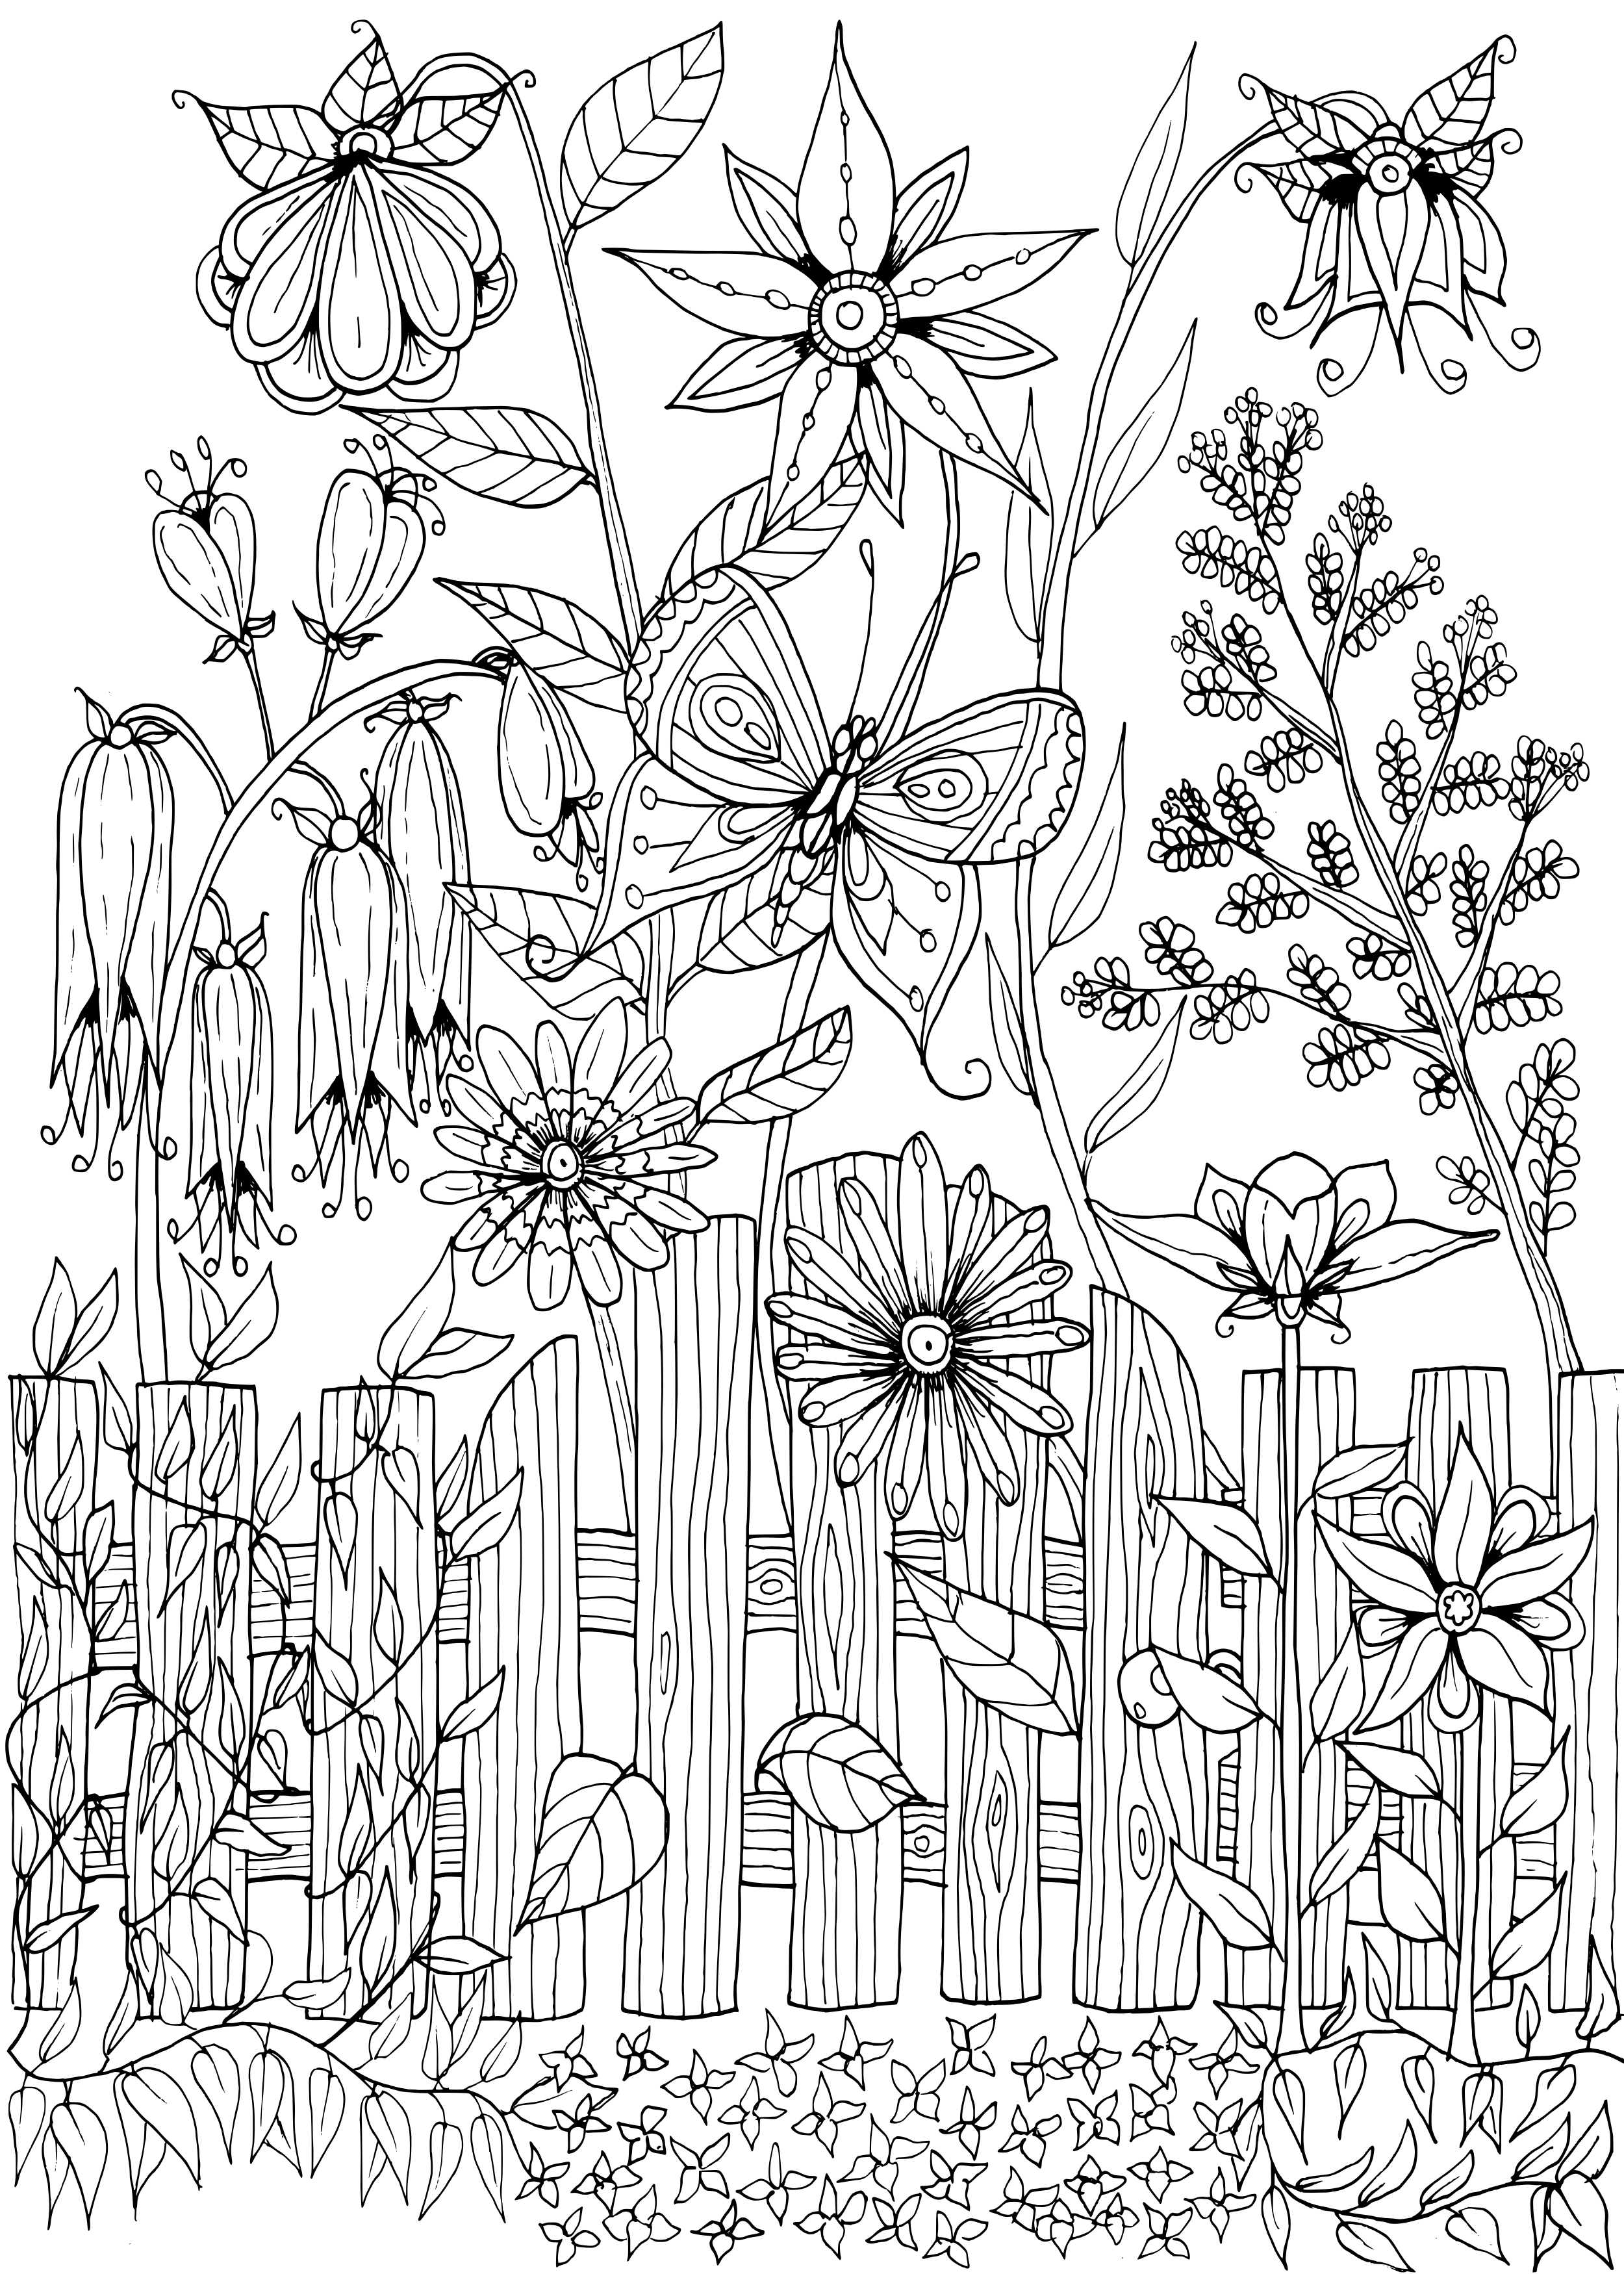 Flower garden coloring pages printable ~ Garden Gate Doodle by WelshPixie on DeviantArt